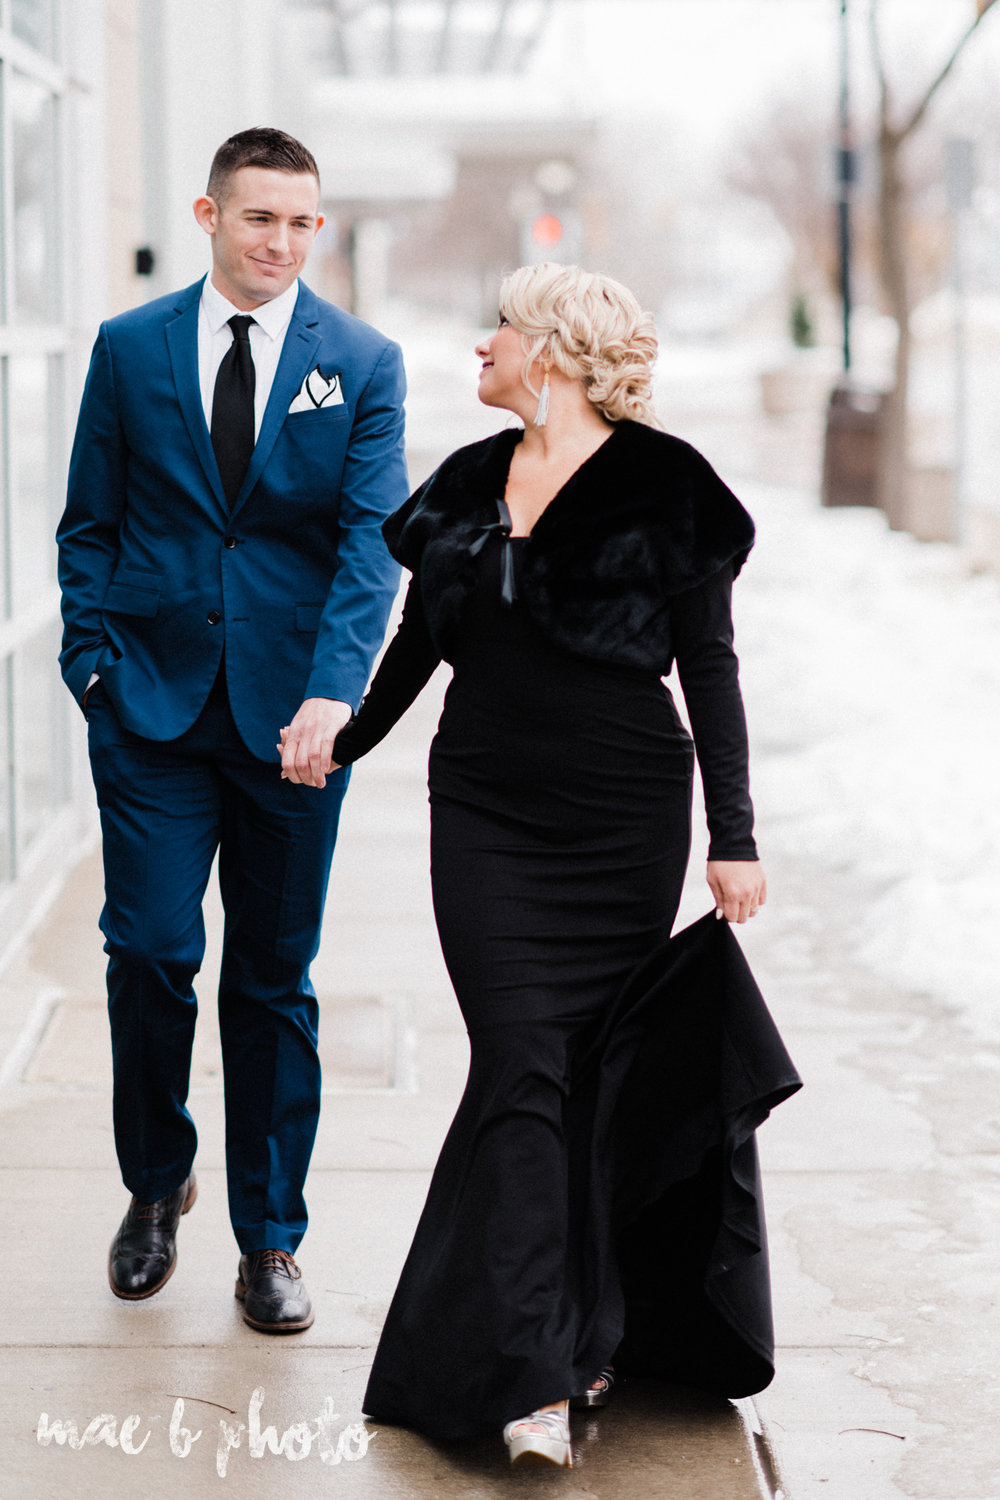 paige and cale's personalized winter glam engagement session at the butler institute of american art and downtown youngstown in youngstown ohio photographed by youngstown wedding photographer mae b photo-22.jpg